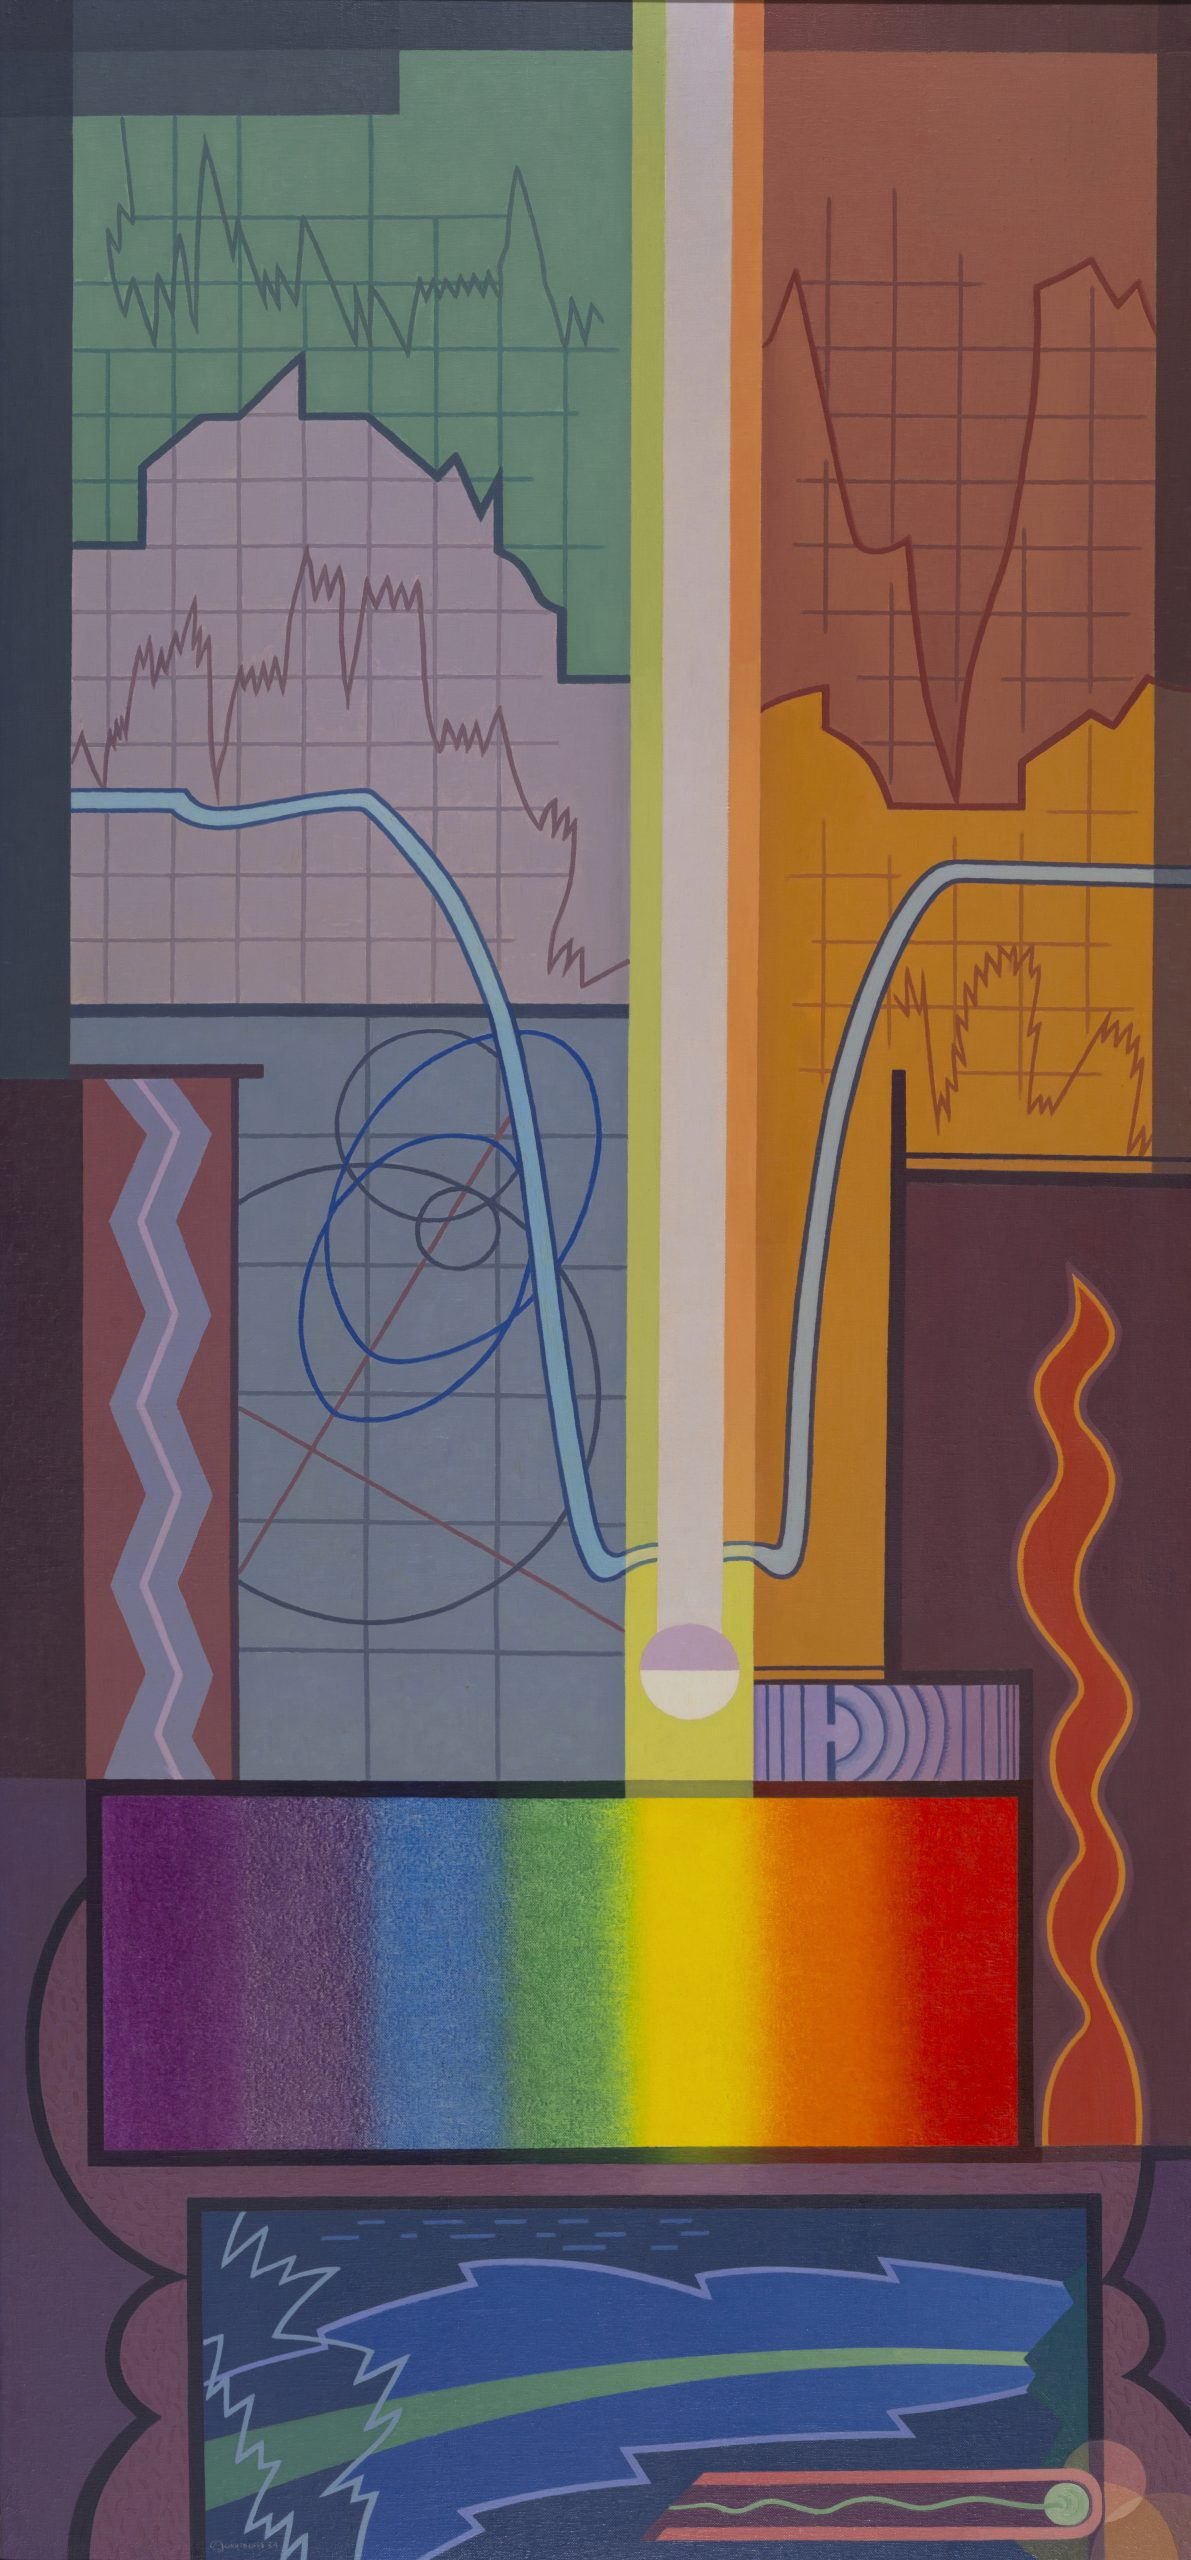 Physics from the series The Cycles of Science, 1934, Oil on canvas, Acquired through the Works Progress Administration (WPA) of the Federal Government, Raymond Jonson Collection